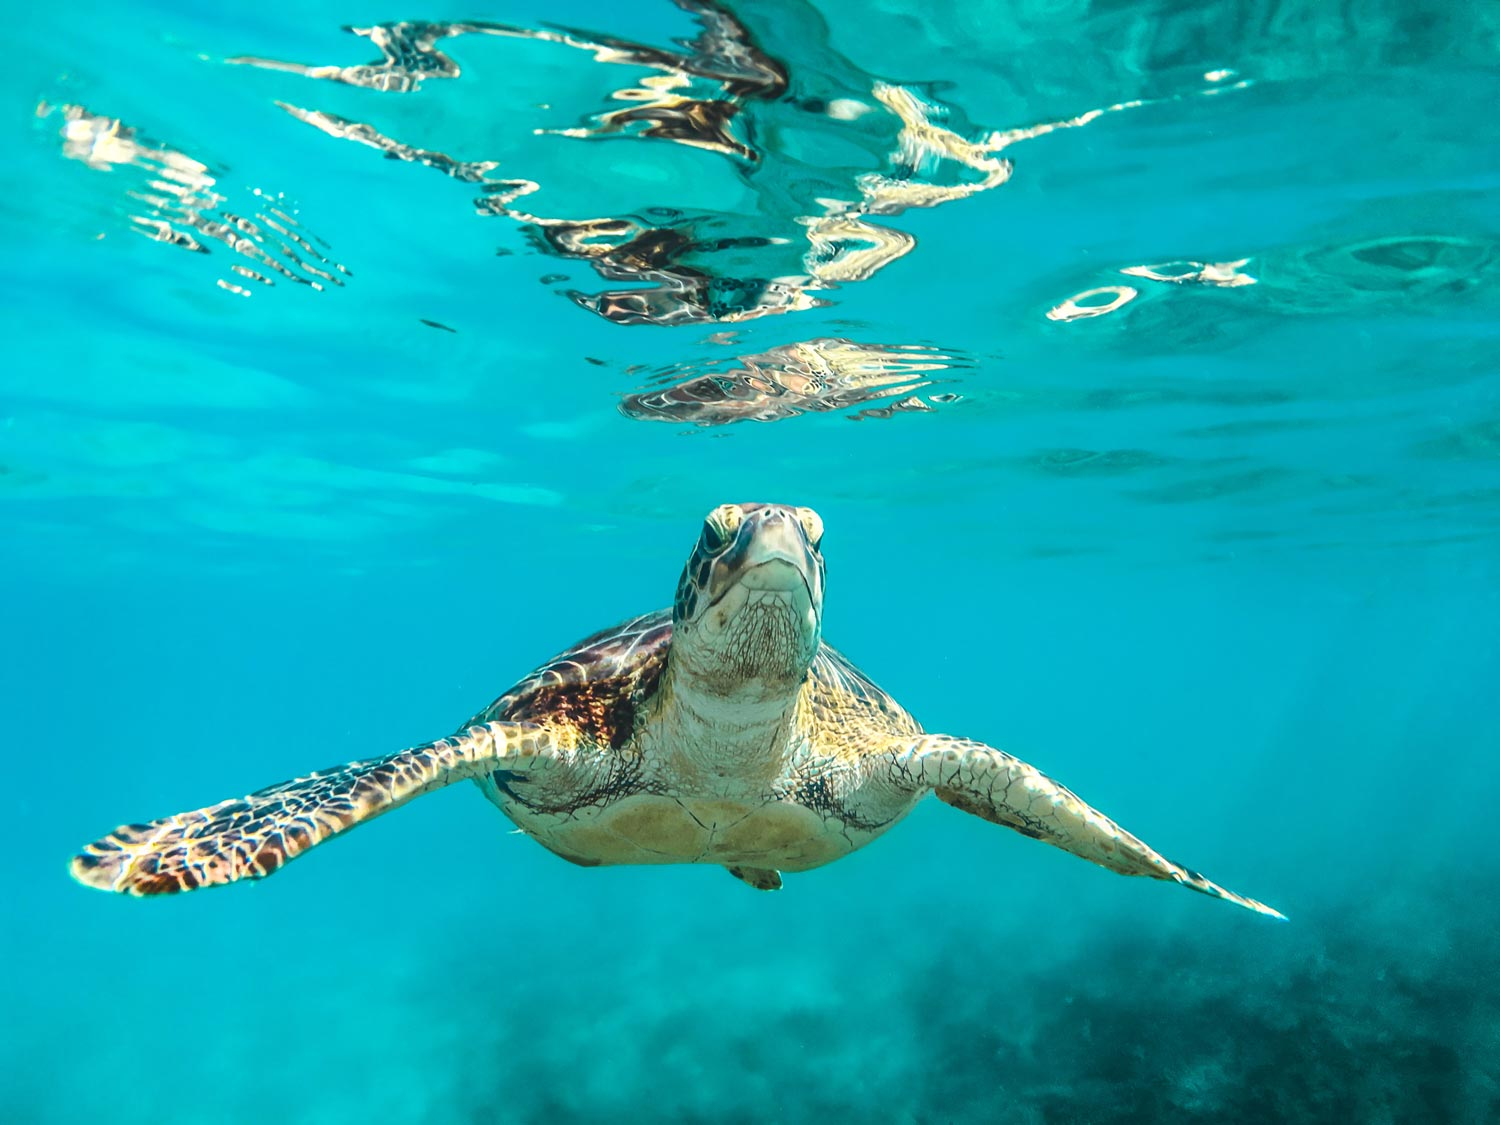 Underwater photo of a sea turtle swimming in tropical waters.